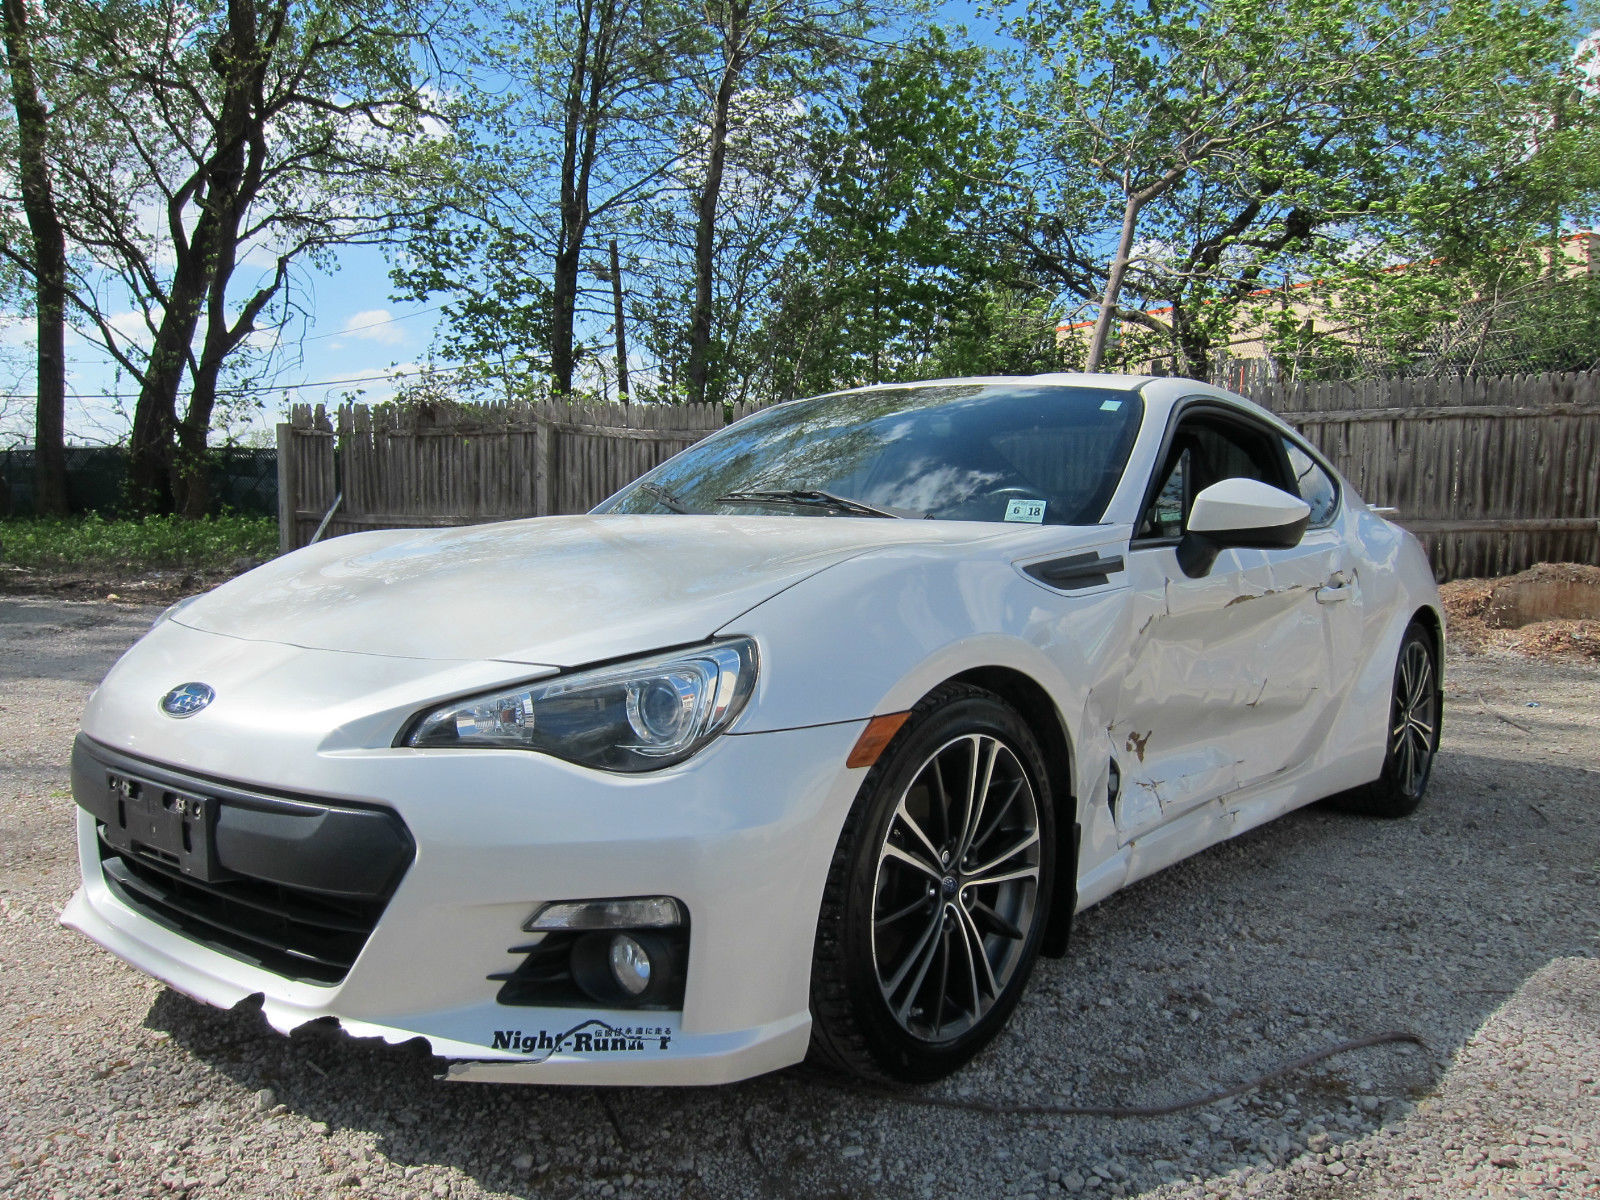 boxer engine 2013 subaru brz repairable for sale. Black Bedroom Furniture Sets. Home Design Ideas